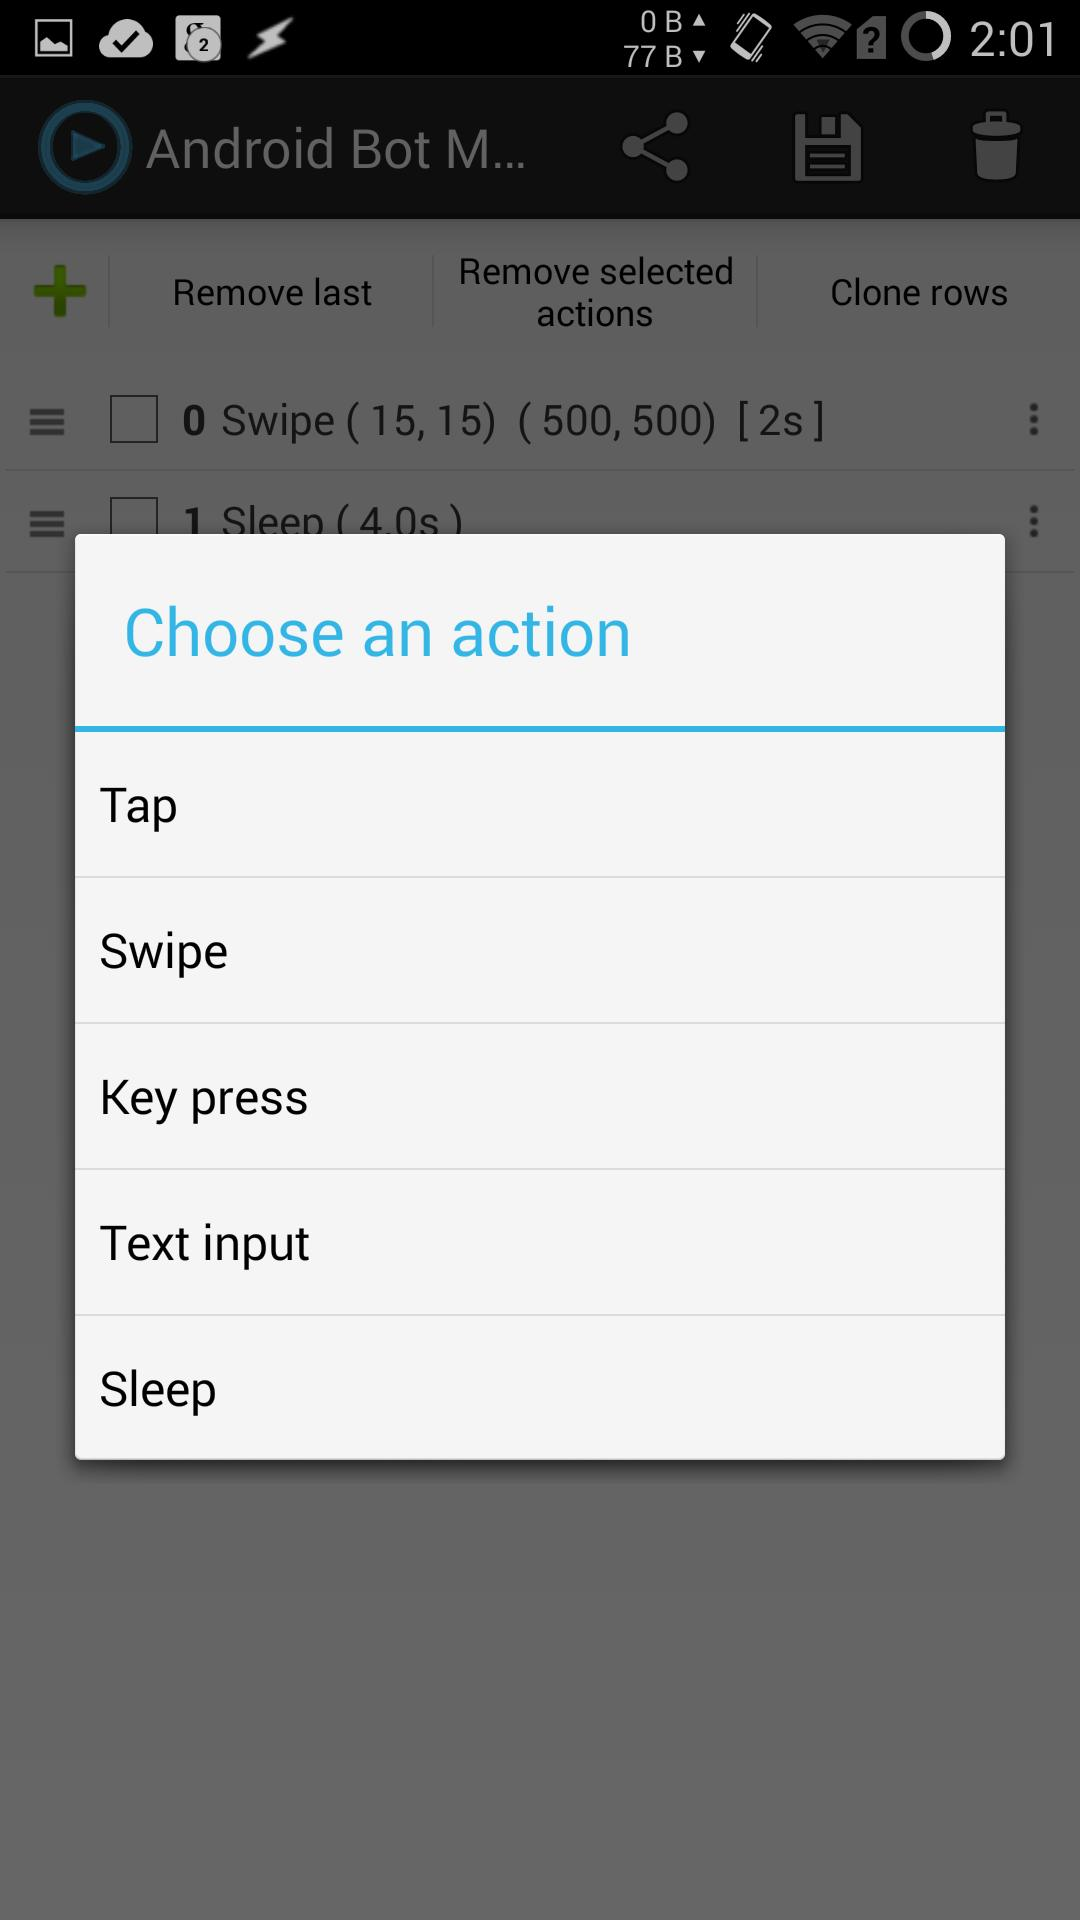 ROOT] Bot Maker for Android for Android - APK Download